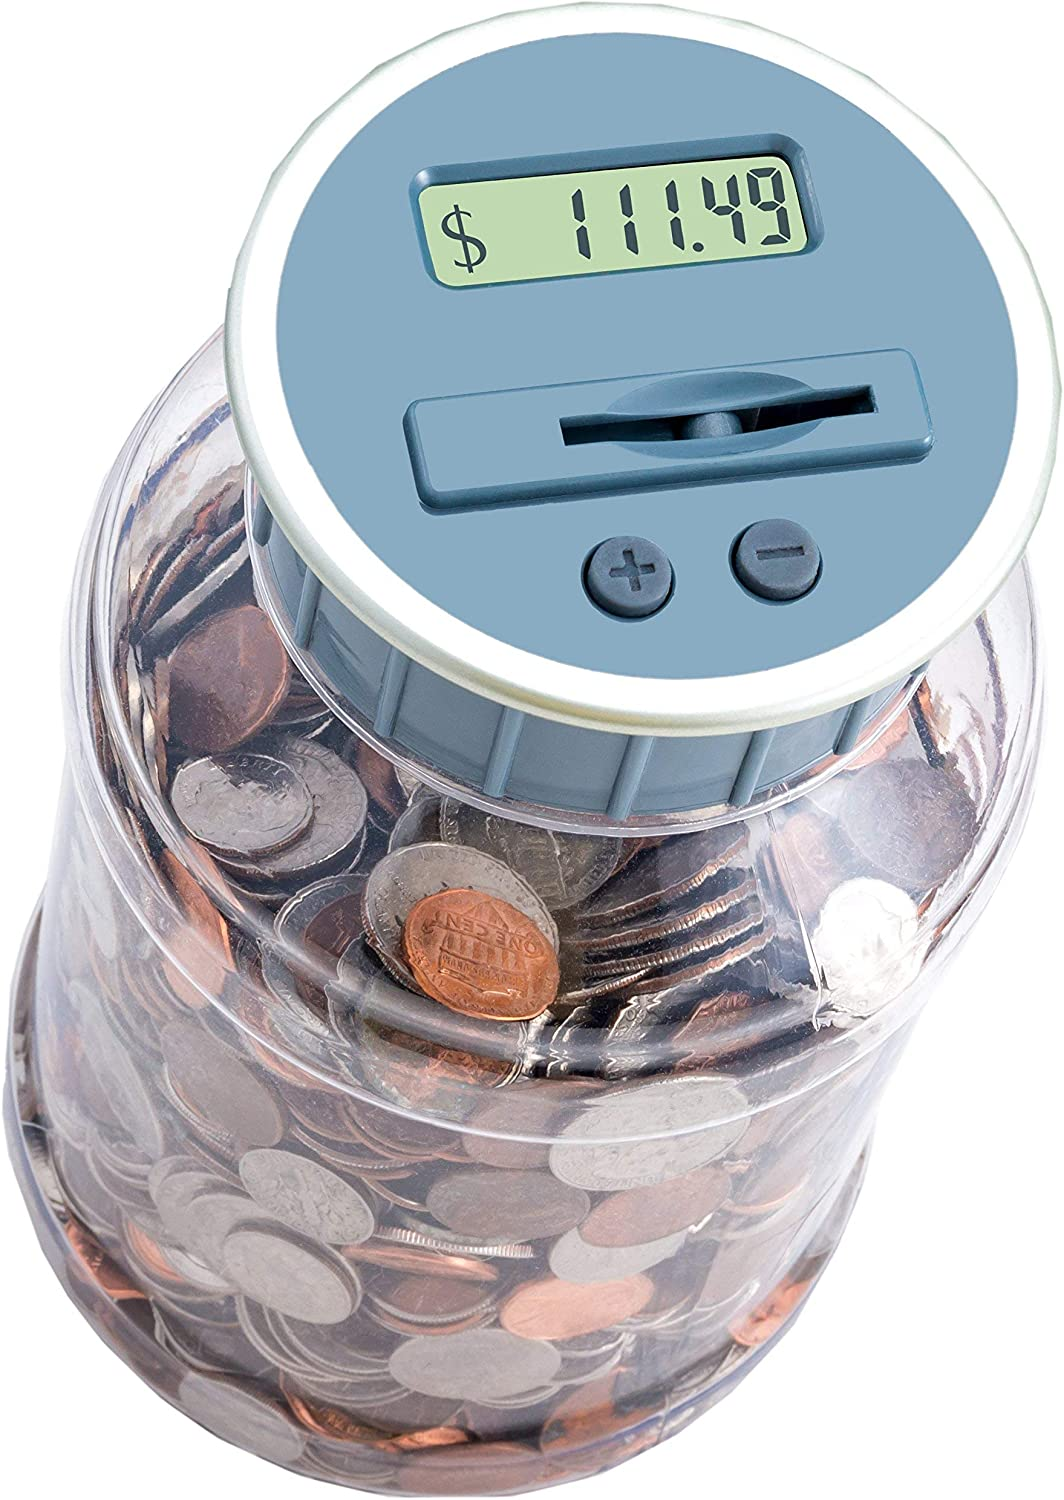 M&R Digital Counting Coin Bank. Batteries Included! Personal Coin Counter/Money Counting jar, totals up Your Savings- Works with All U.S. Coins-in Retail Packaging.